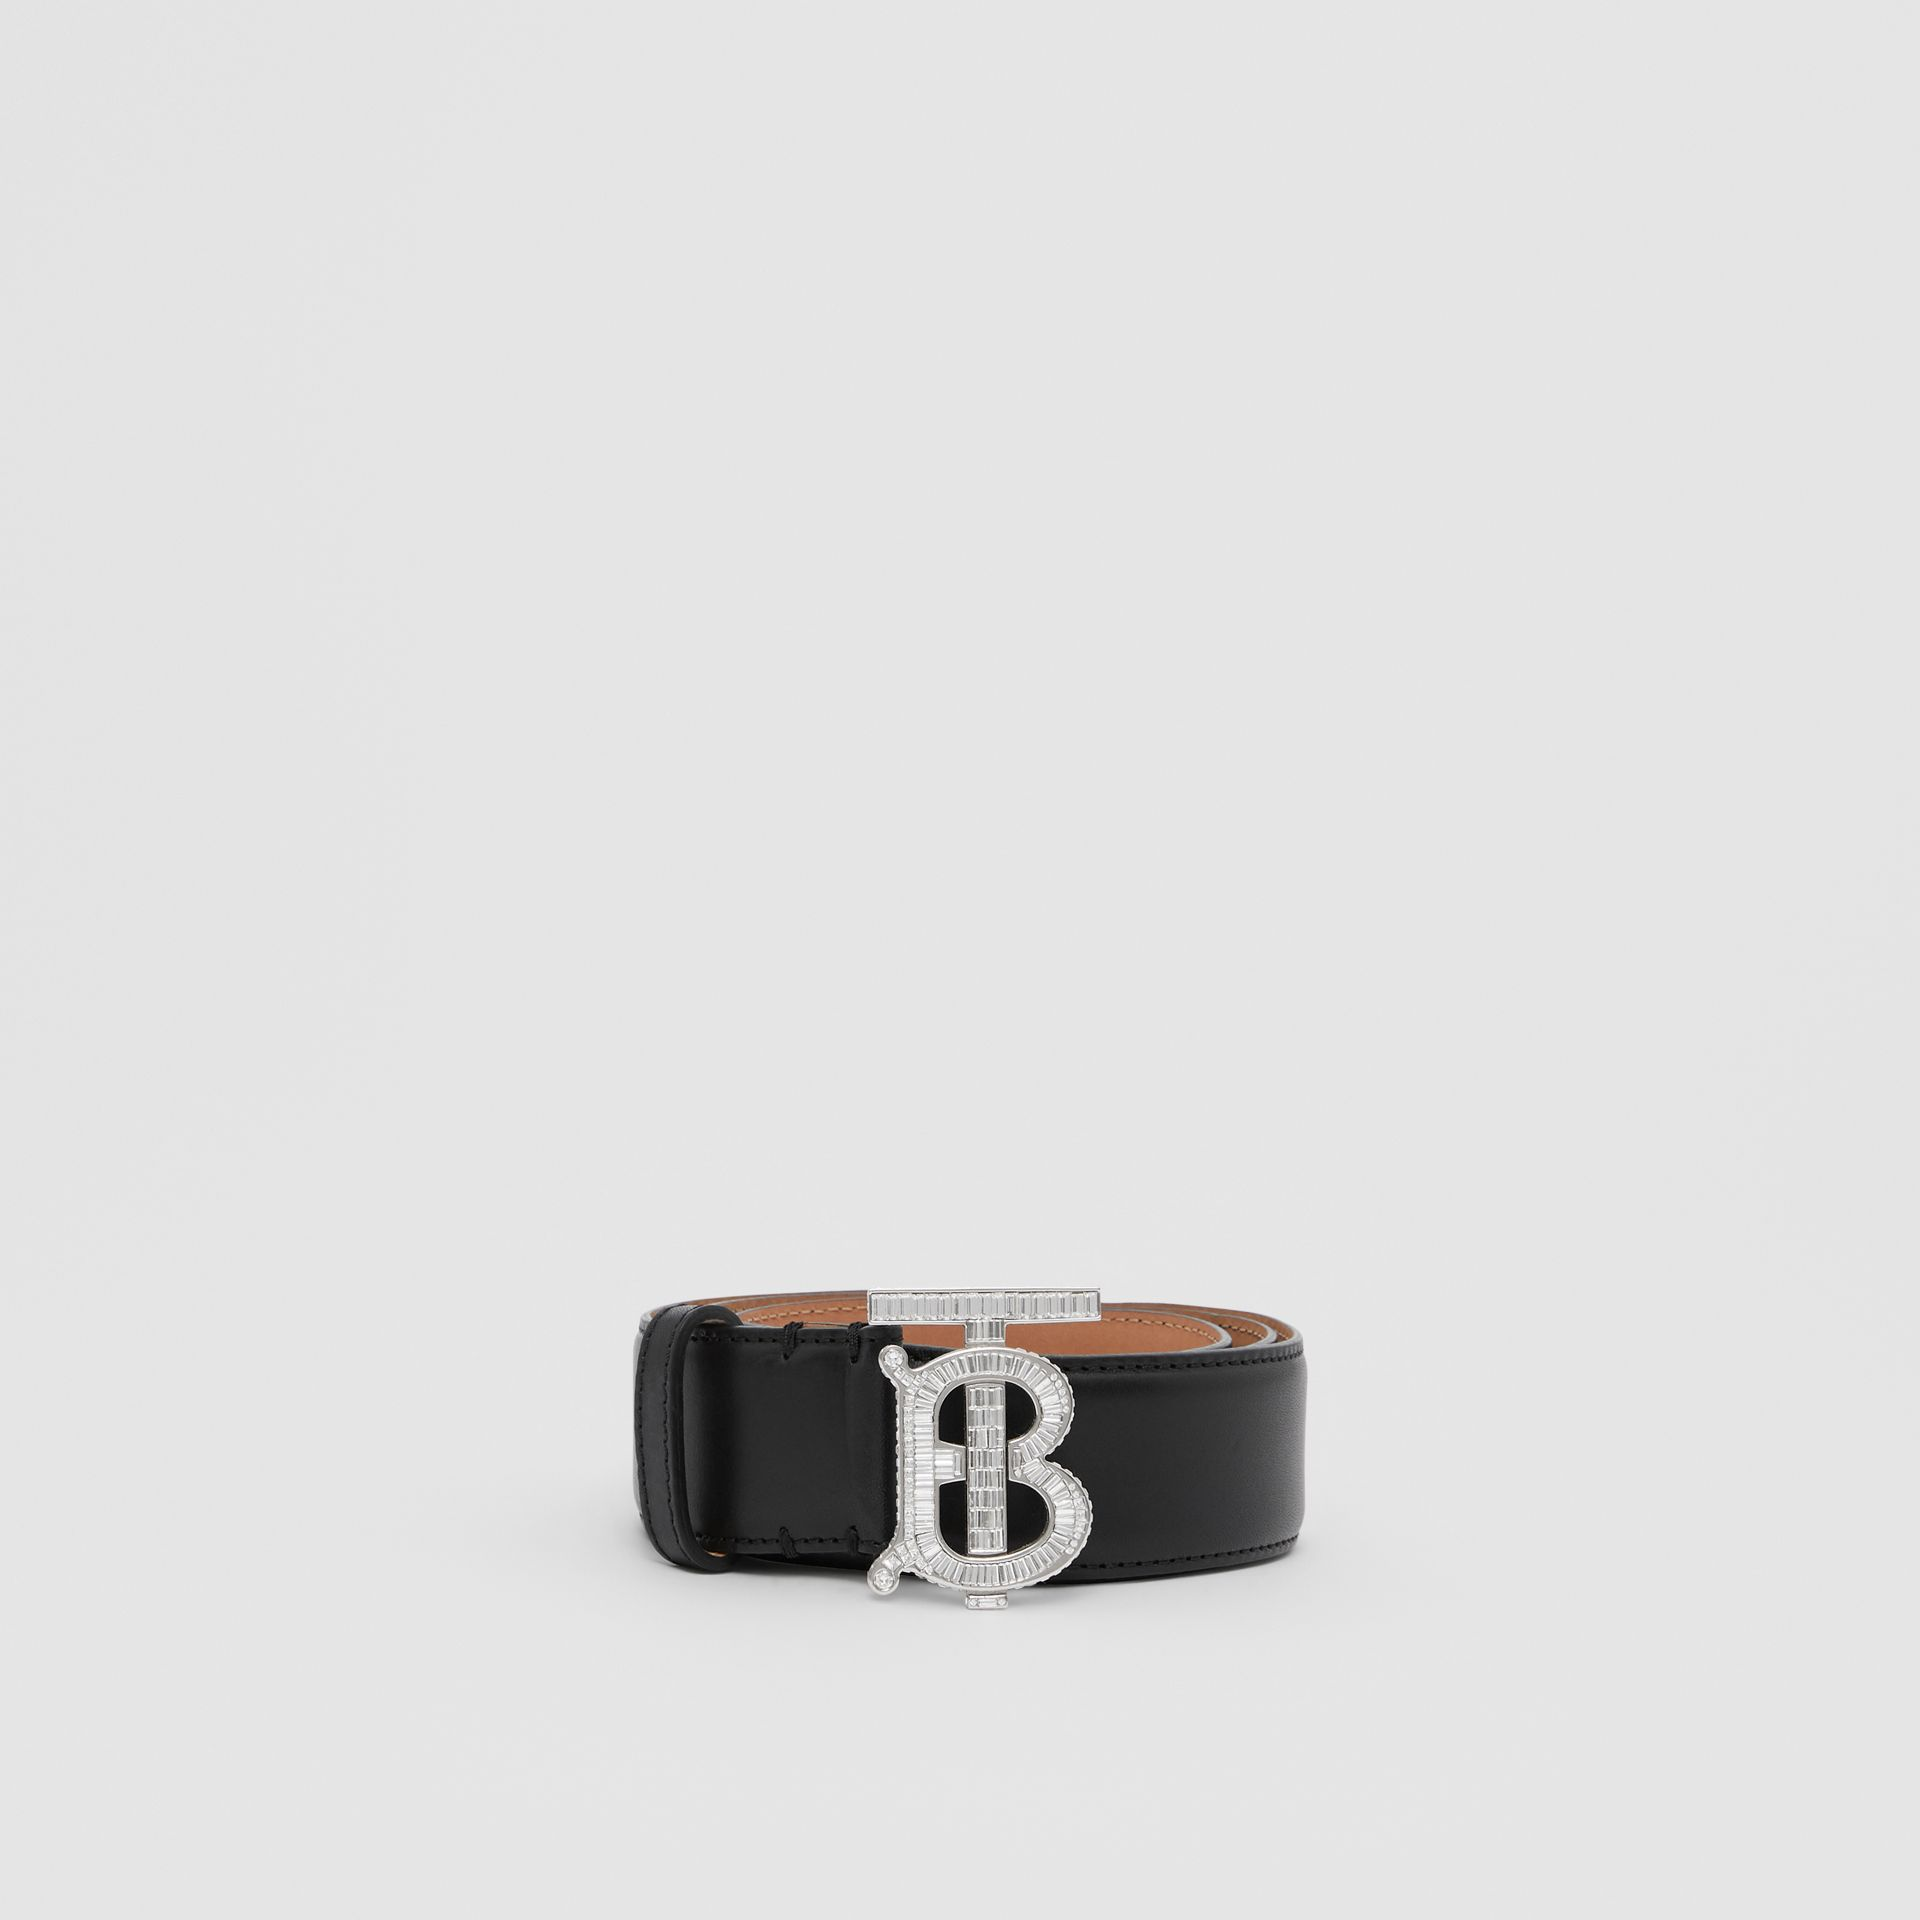 Crystal Monogram Motif Leather Belt in Black/palladium - Women | Burberry United States - gallery image 3